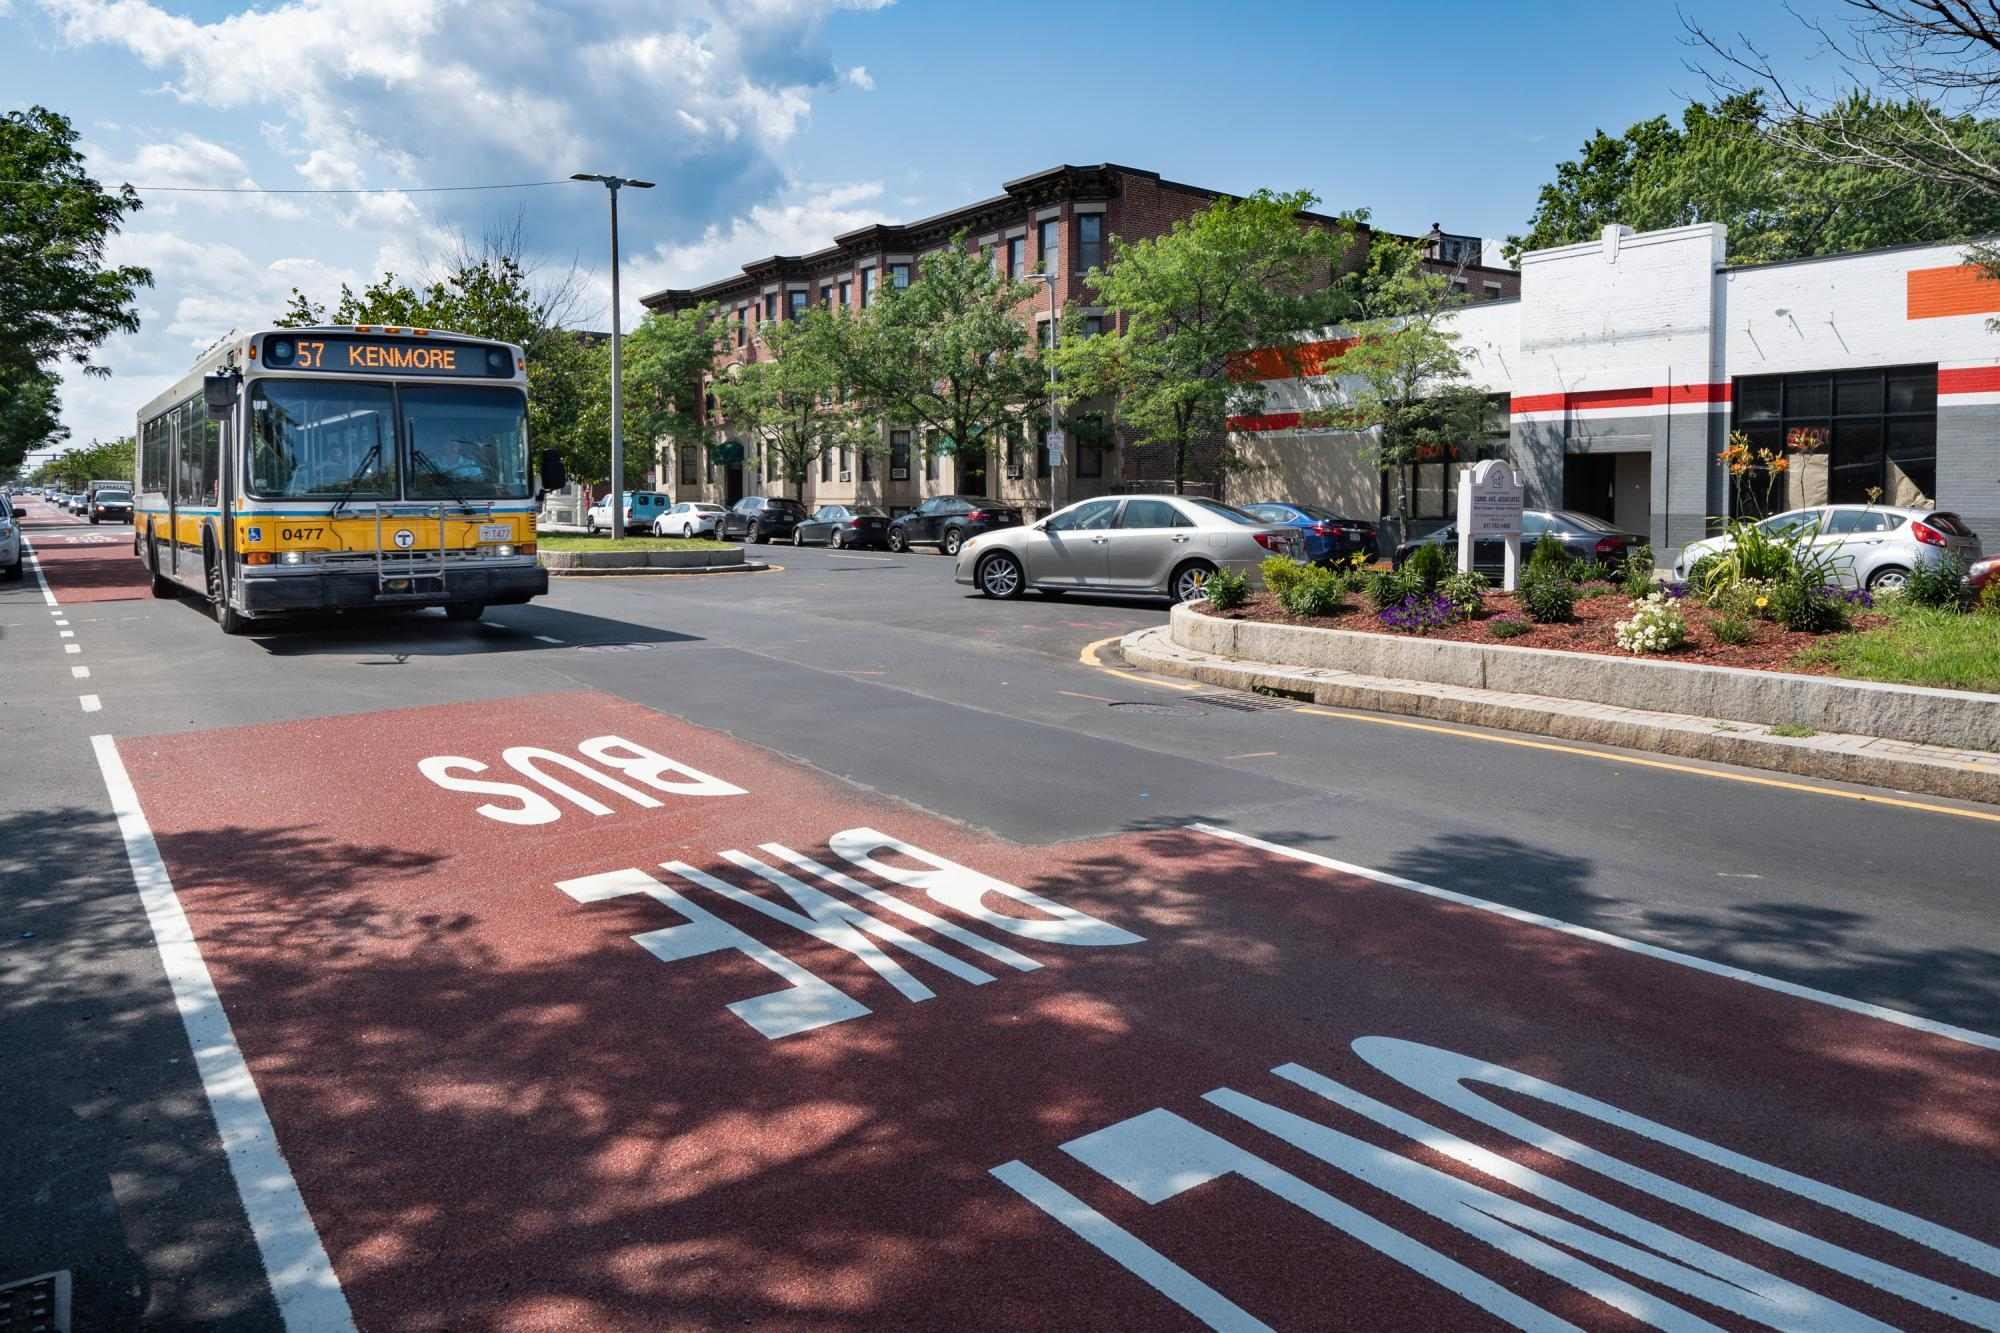 The 57 bus travels in a dedicated bus and bike lane on Brighton Ave in Allston. (July 2019)